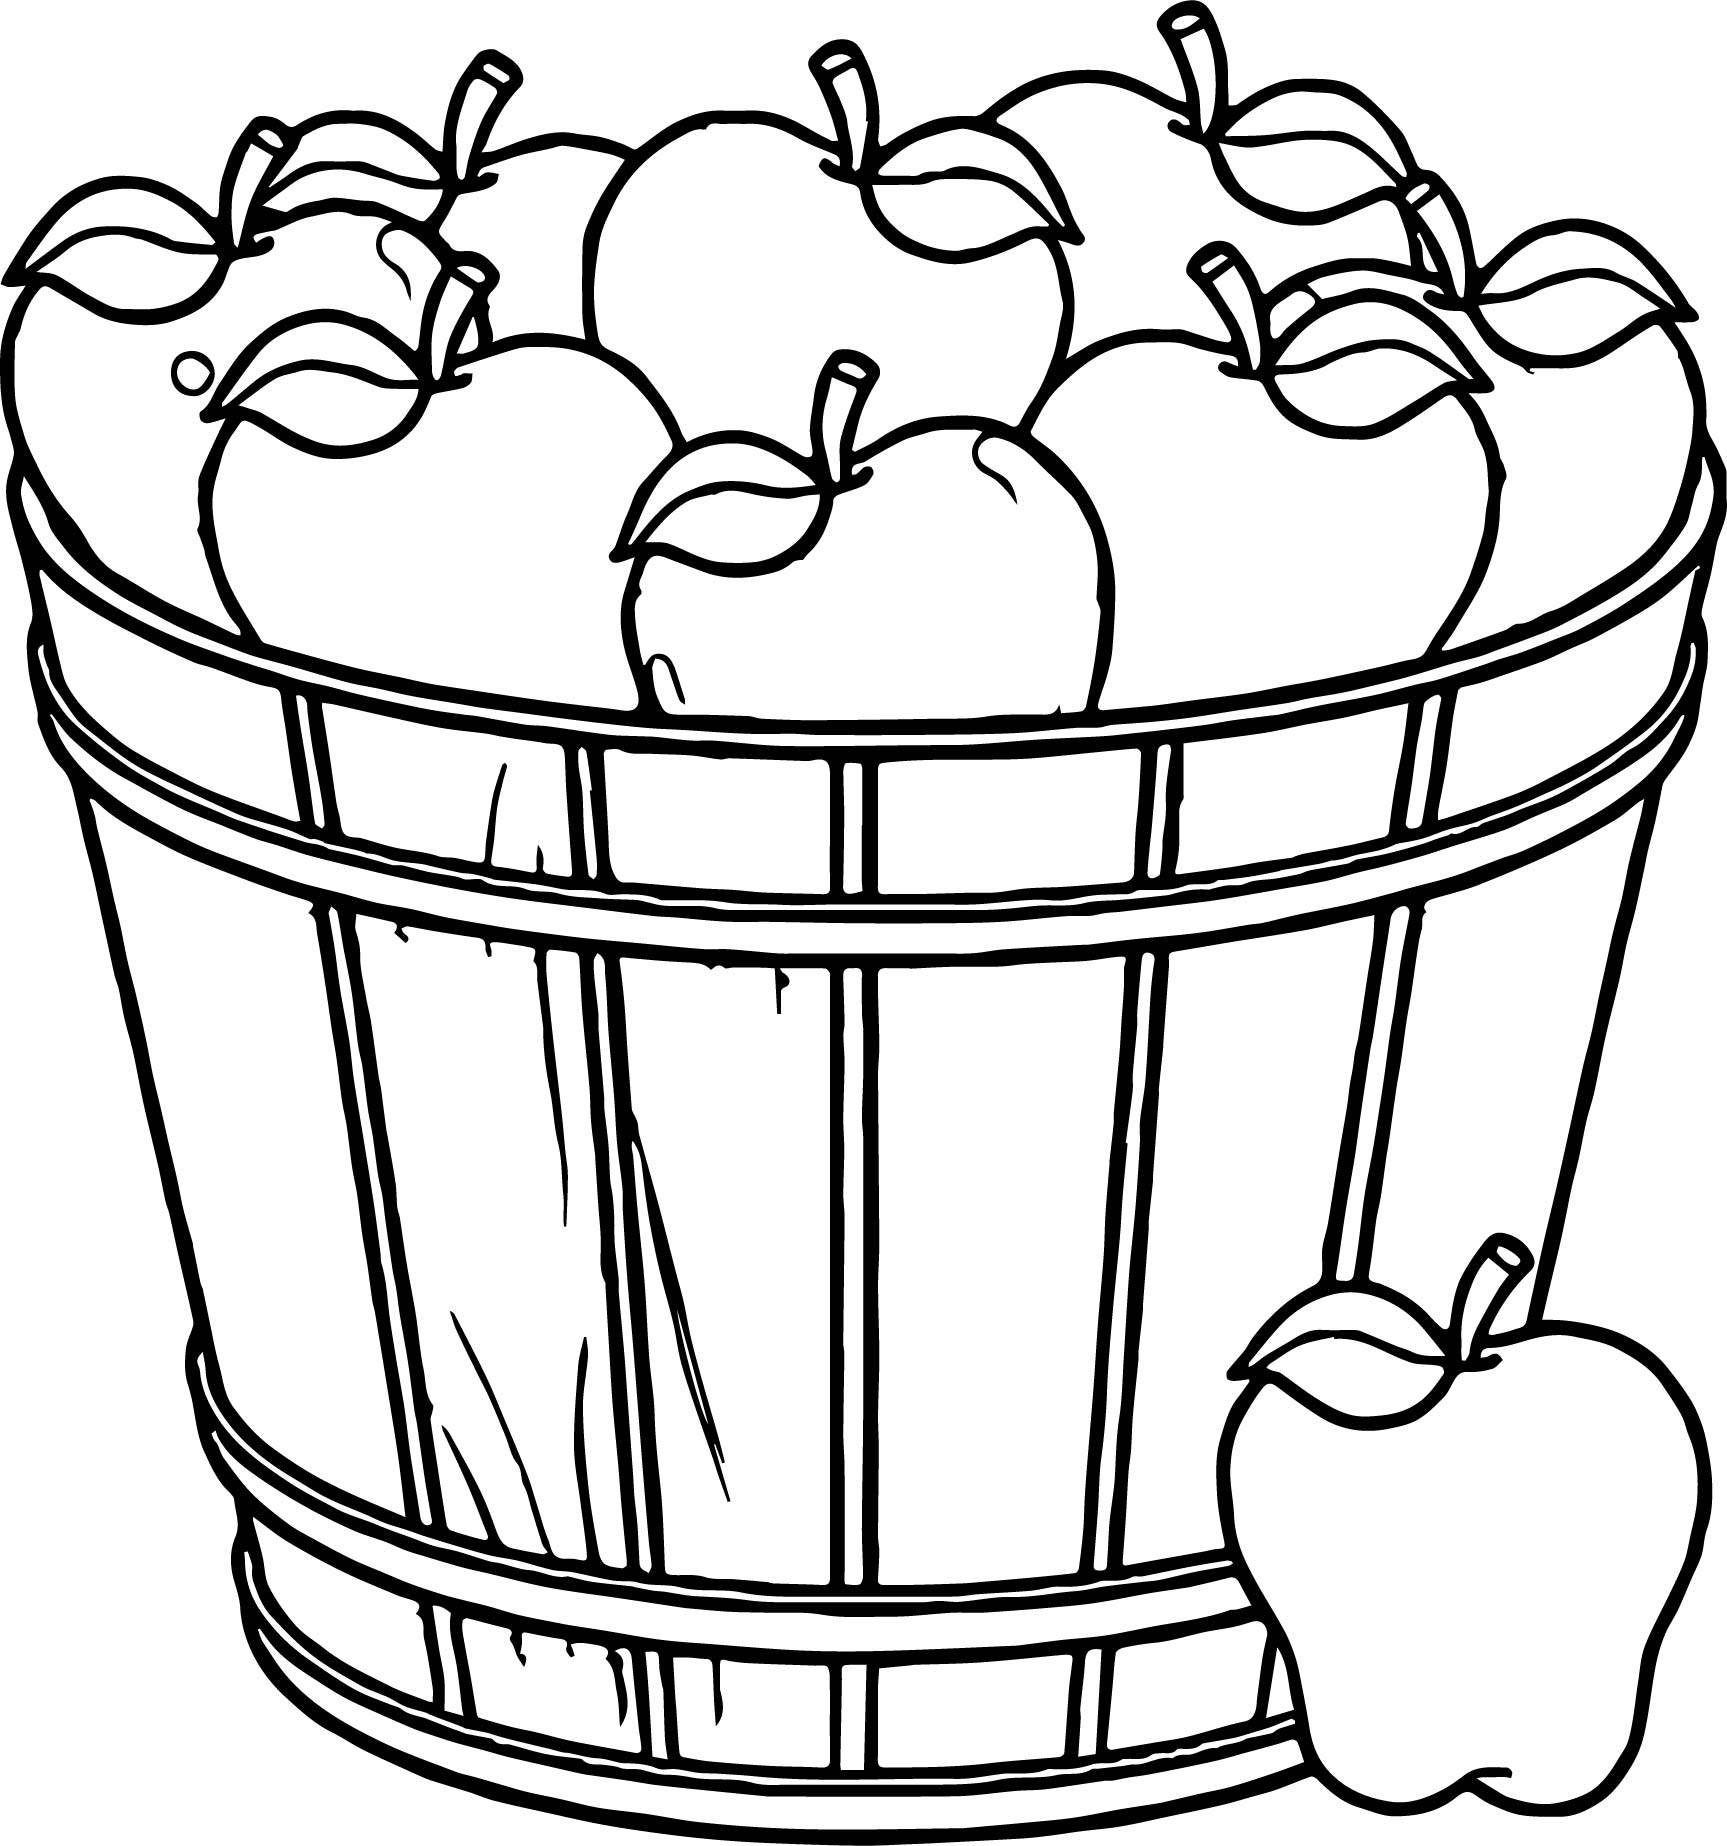 1727x1846 Picnic Basket Apple Apples Coloring Page Free Printable Kids Empty